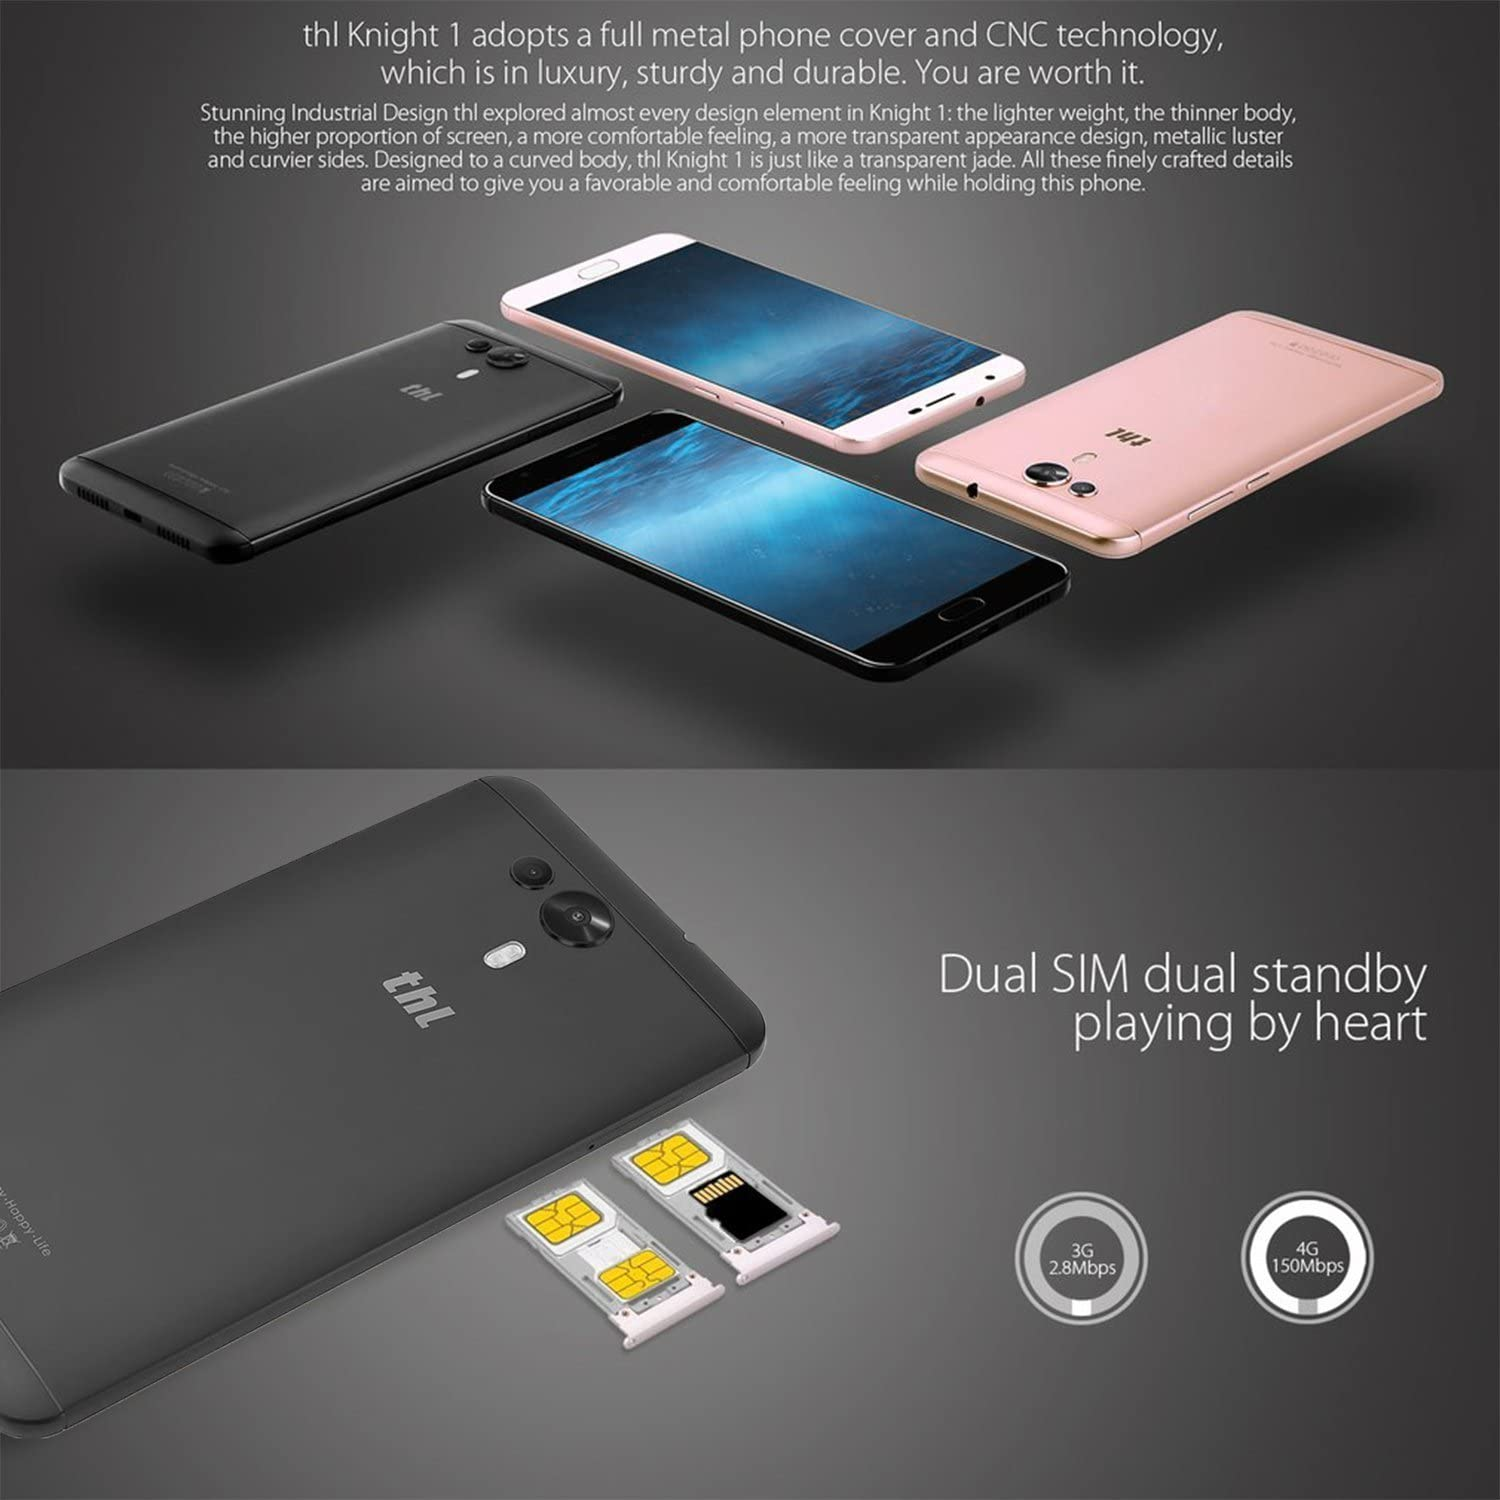 THL-knight1 4G LTE - Smartphone Libre Android 7.0 (5.5